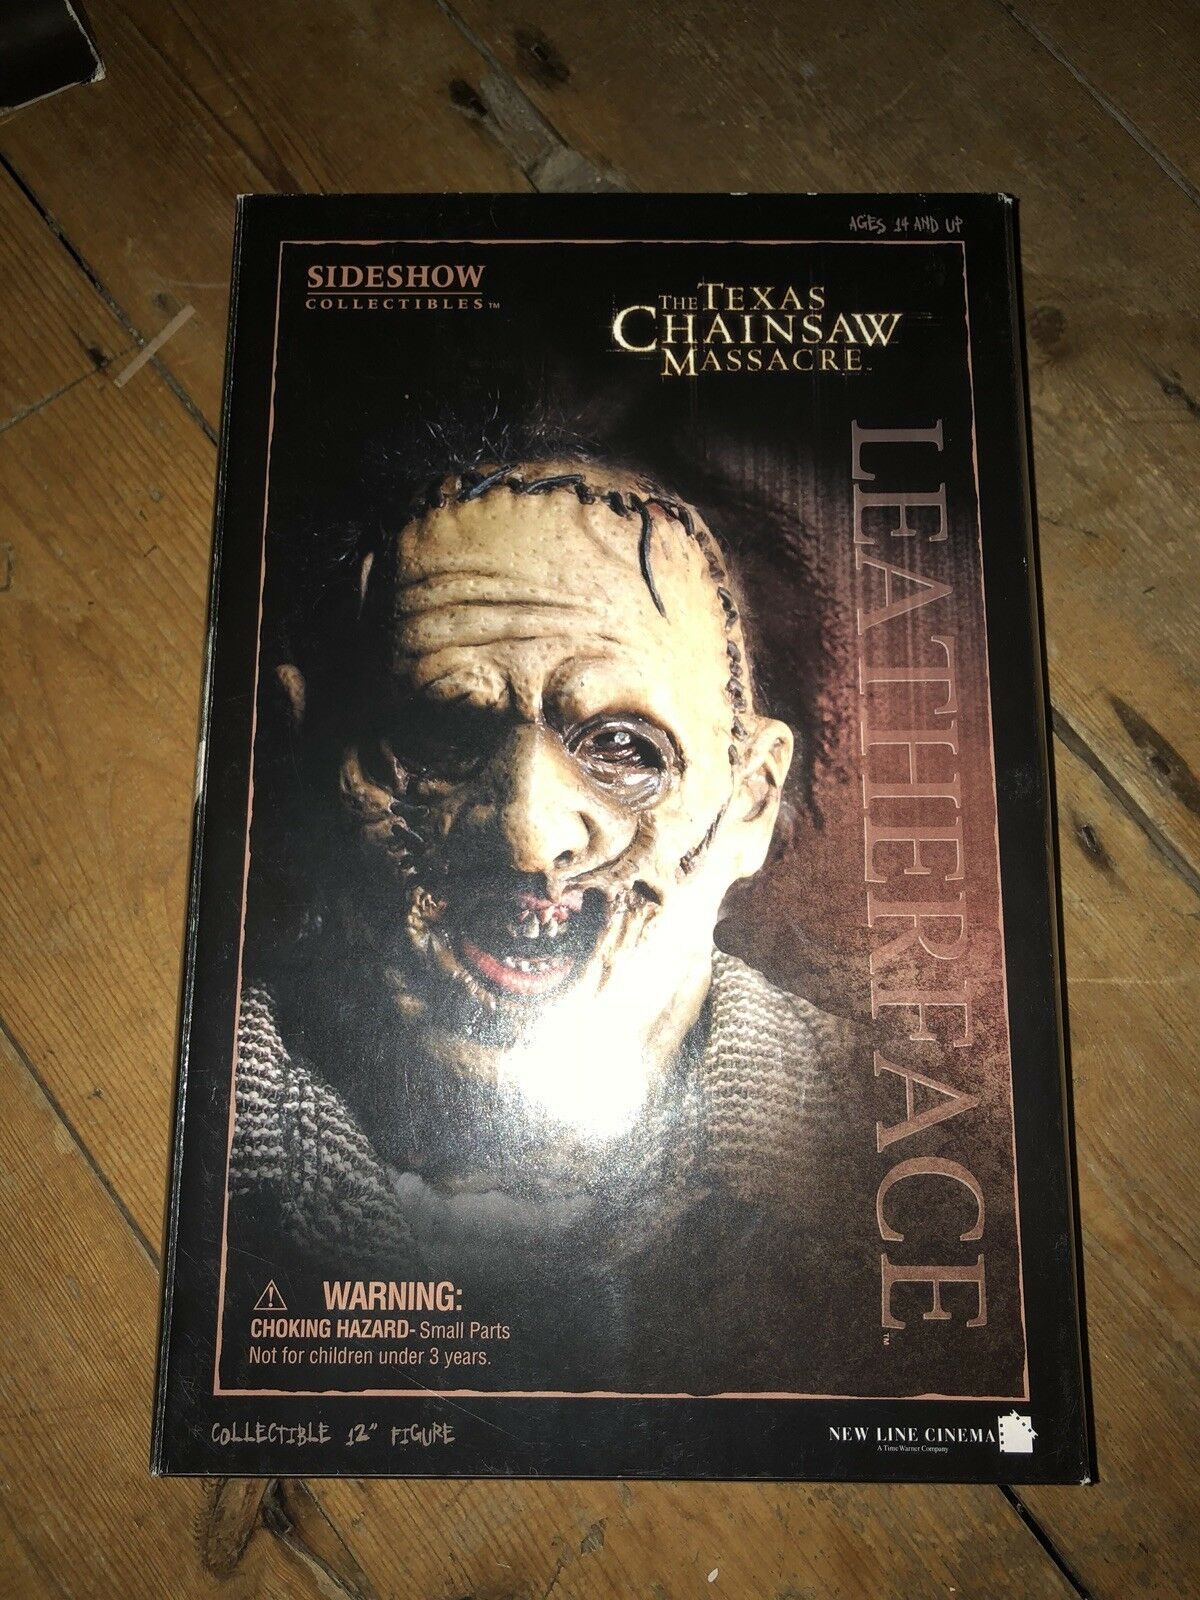 Sideshow Texas Chainsaw Massacre Leatherface Thomas Hewitt exclusivo afssc 125